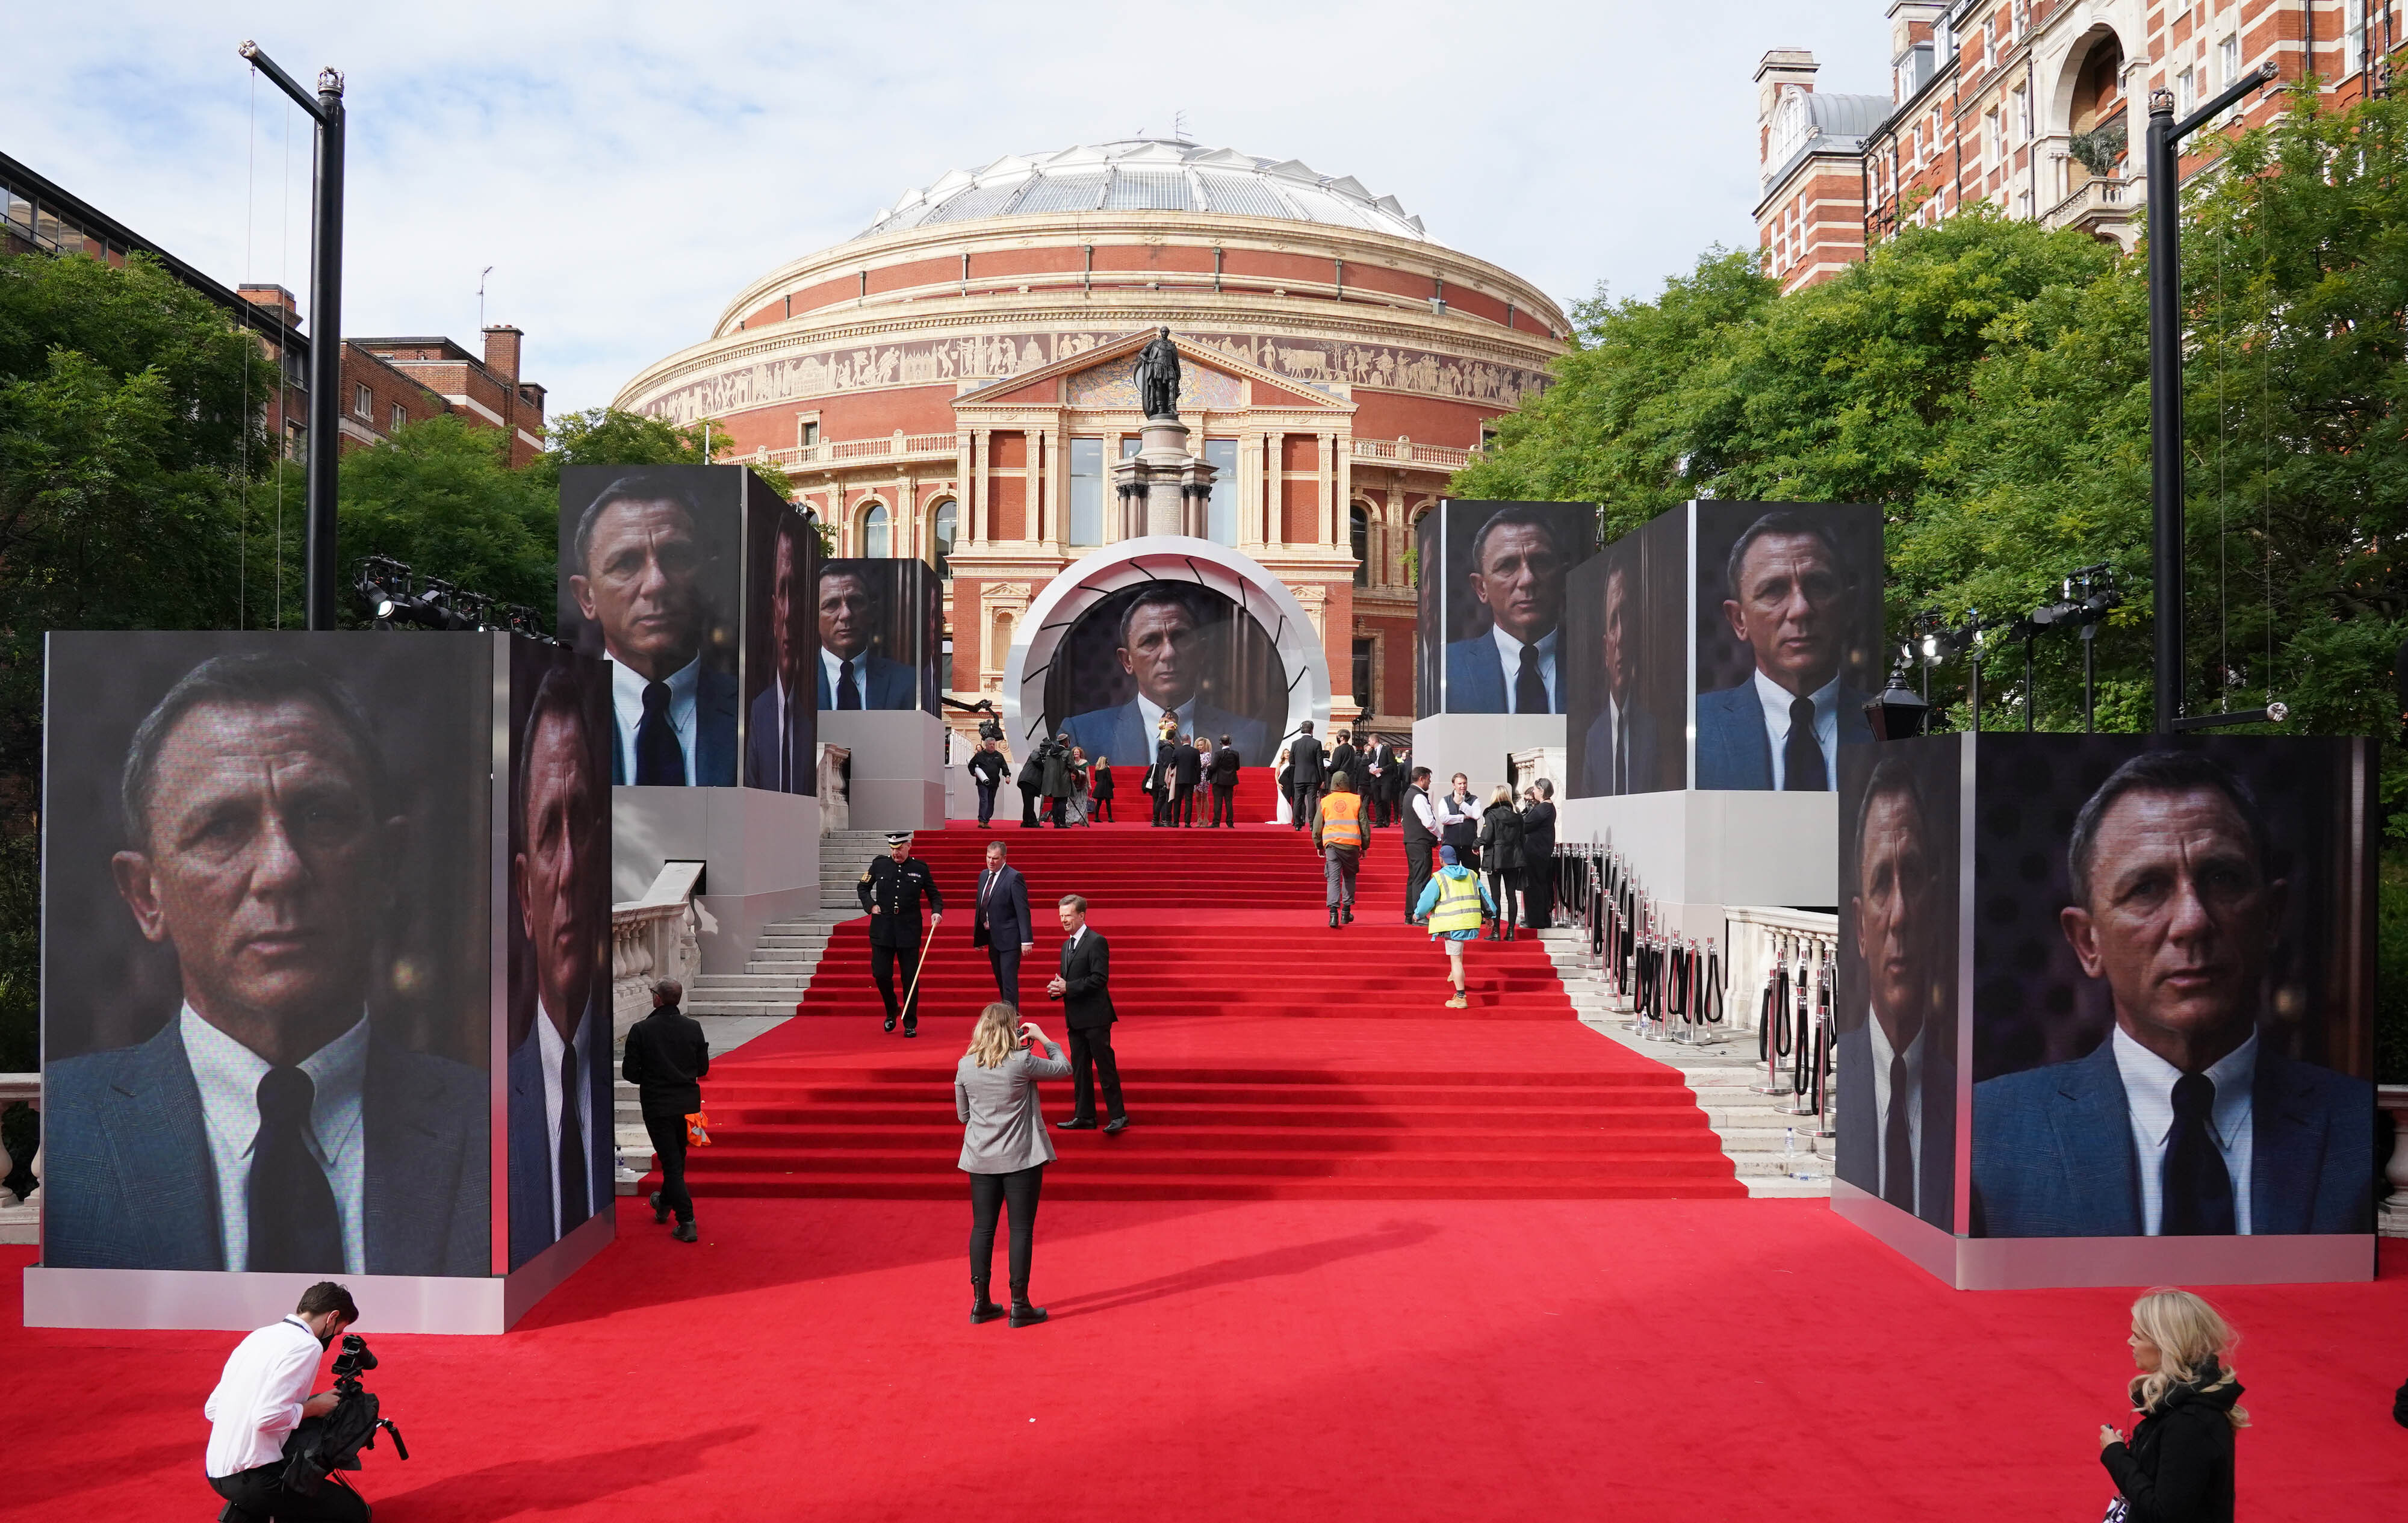 <p>People on the red carpet before the World Premiere of No Time To Die, held at the Royal Albert Hall in London. Picture date: Tuesday September 28, 2021.</p>